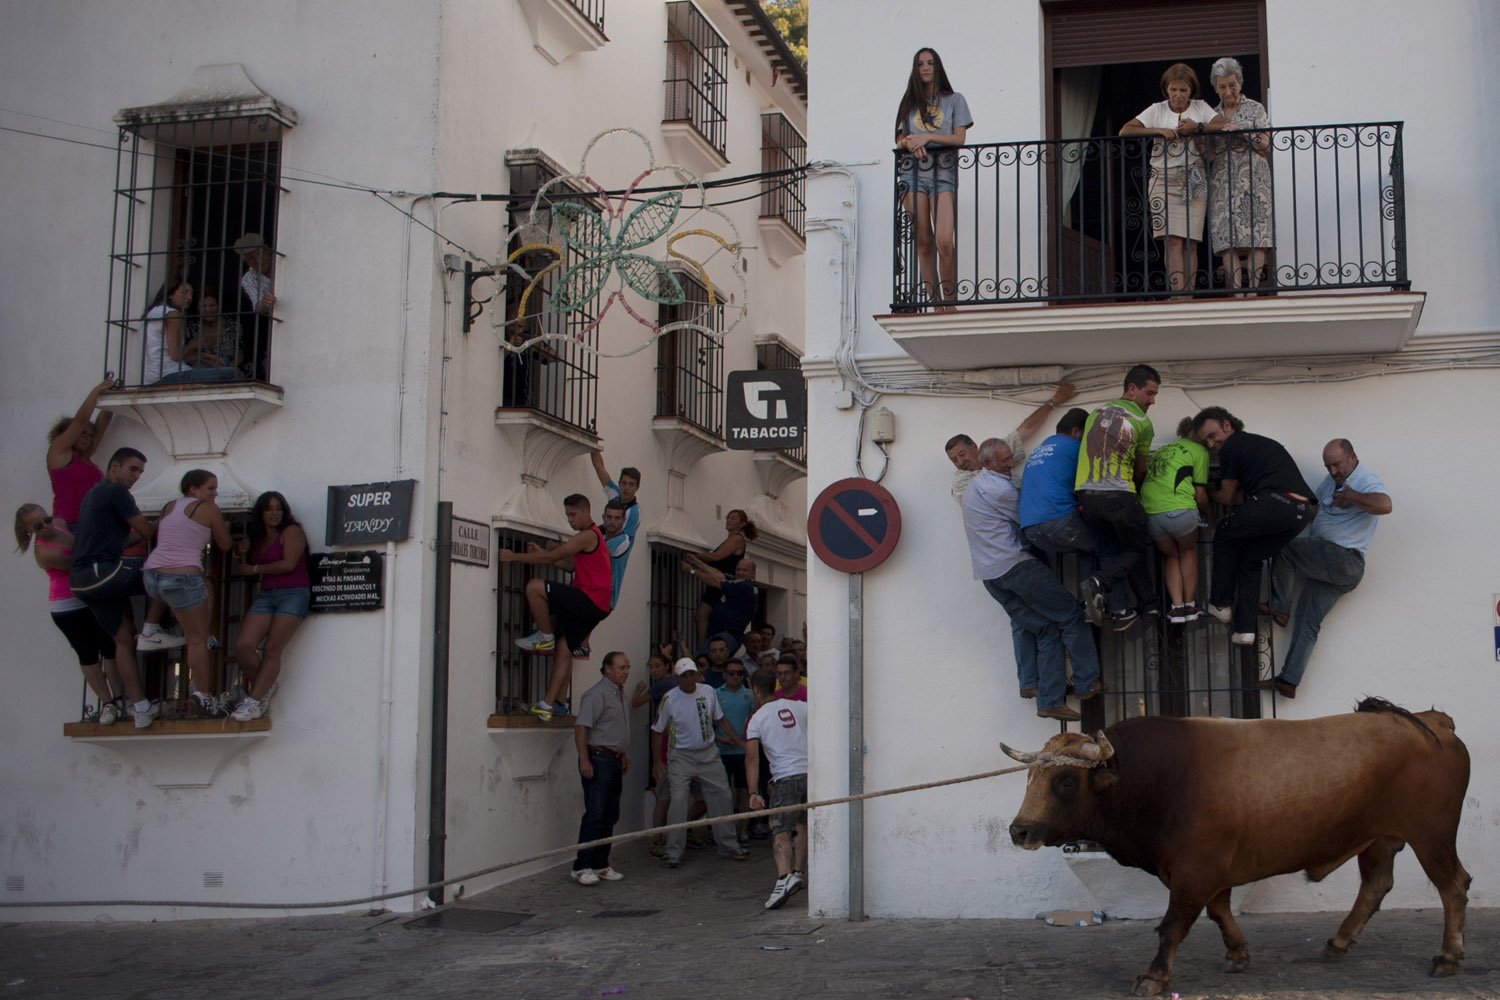 Jul. 21, 2014. People climb onto window ledges to try to avoid a bull during the bull rope festival through the streets of Grazalema, Spain.